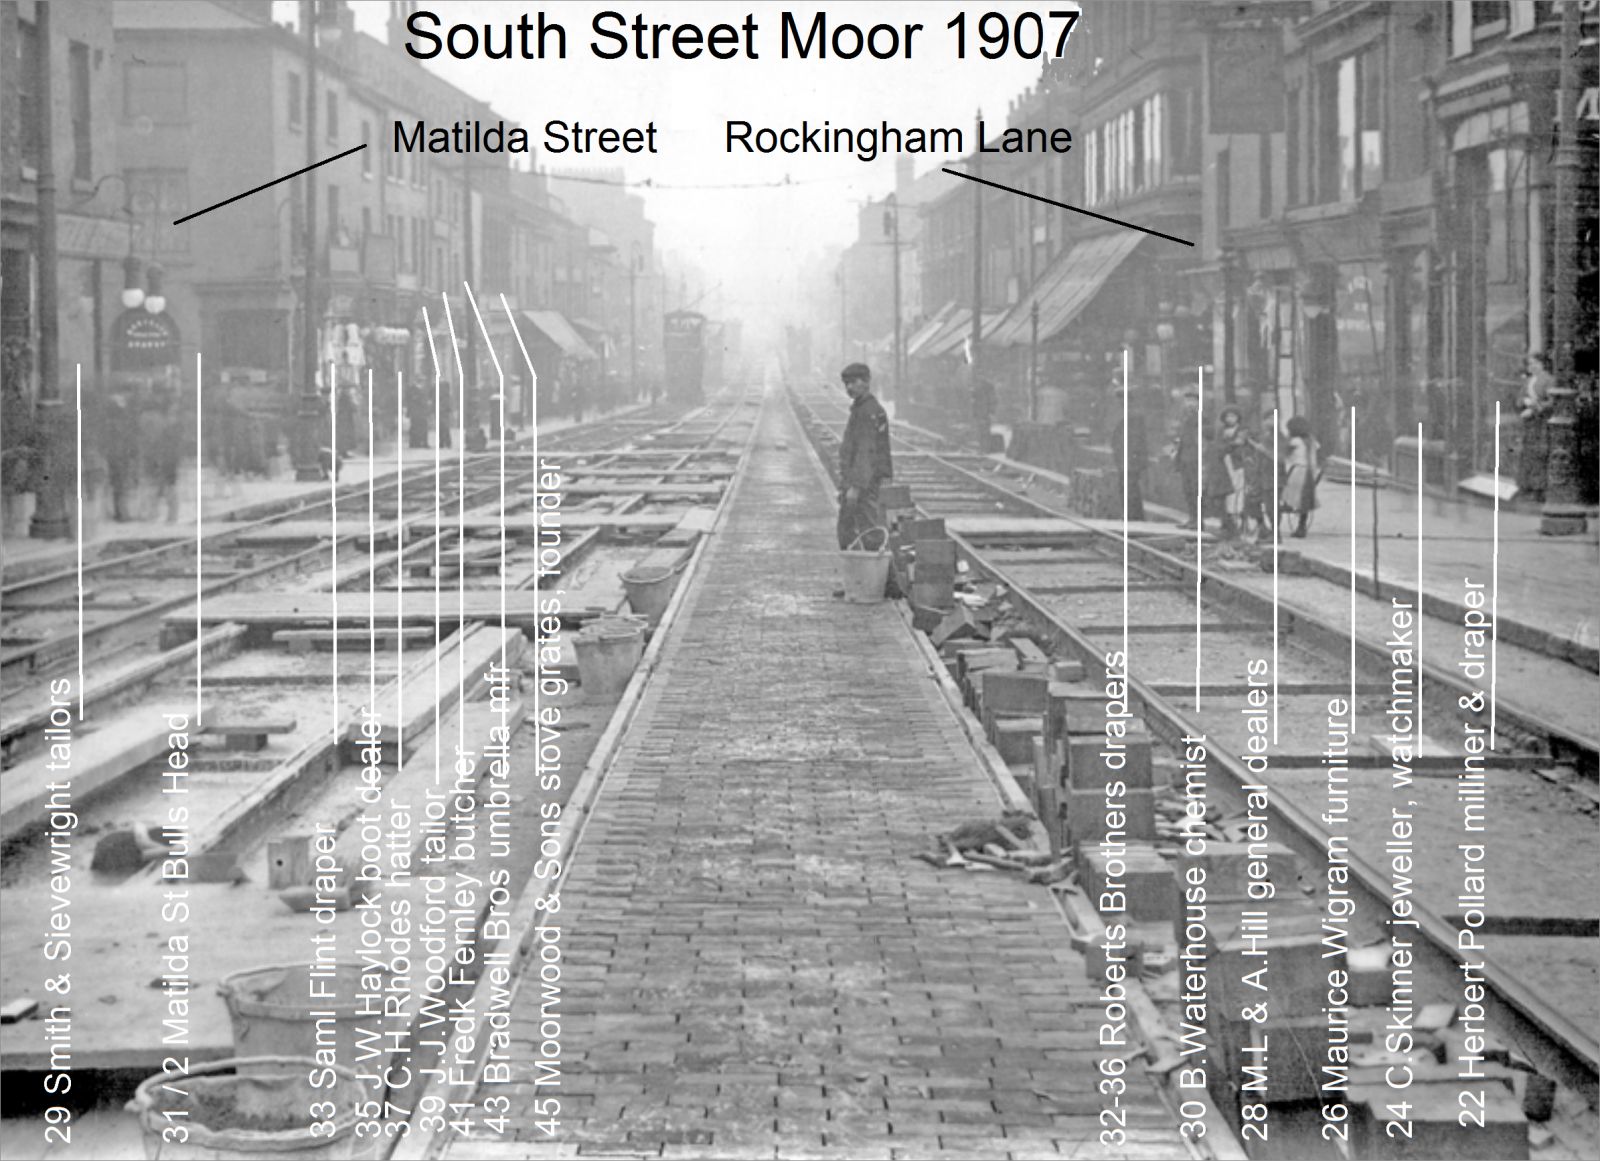 425952368_24SouthStreetMoor1907_annotated.thumb.png.b3e2792534c2b29841327a20757bf7f3.png